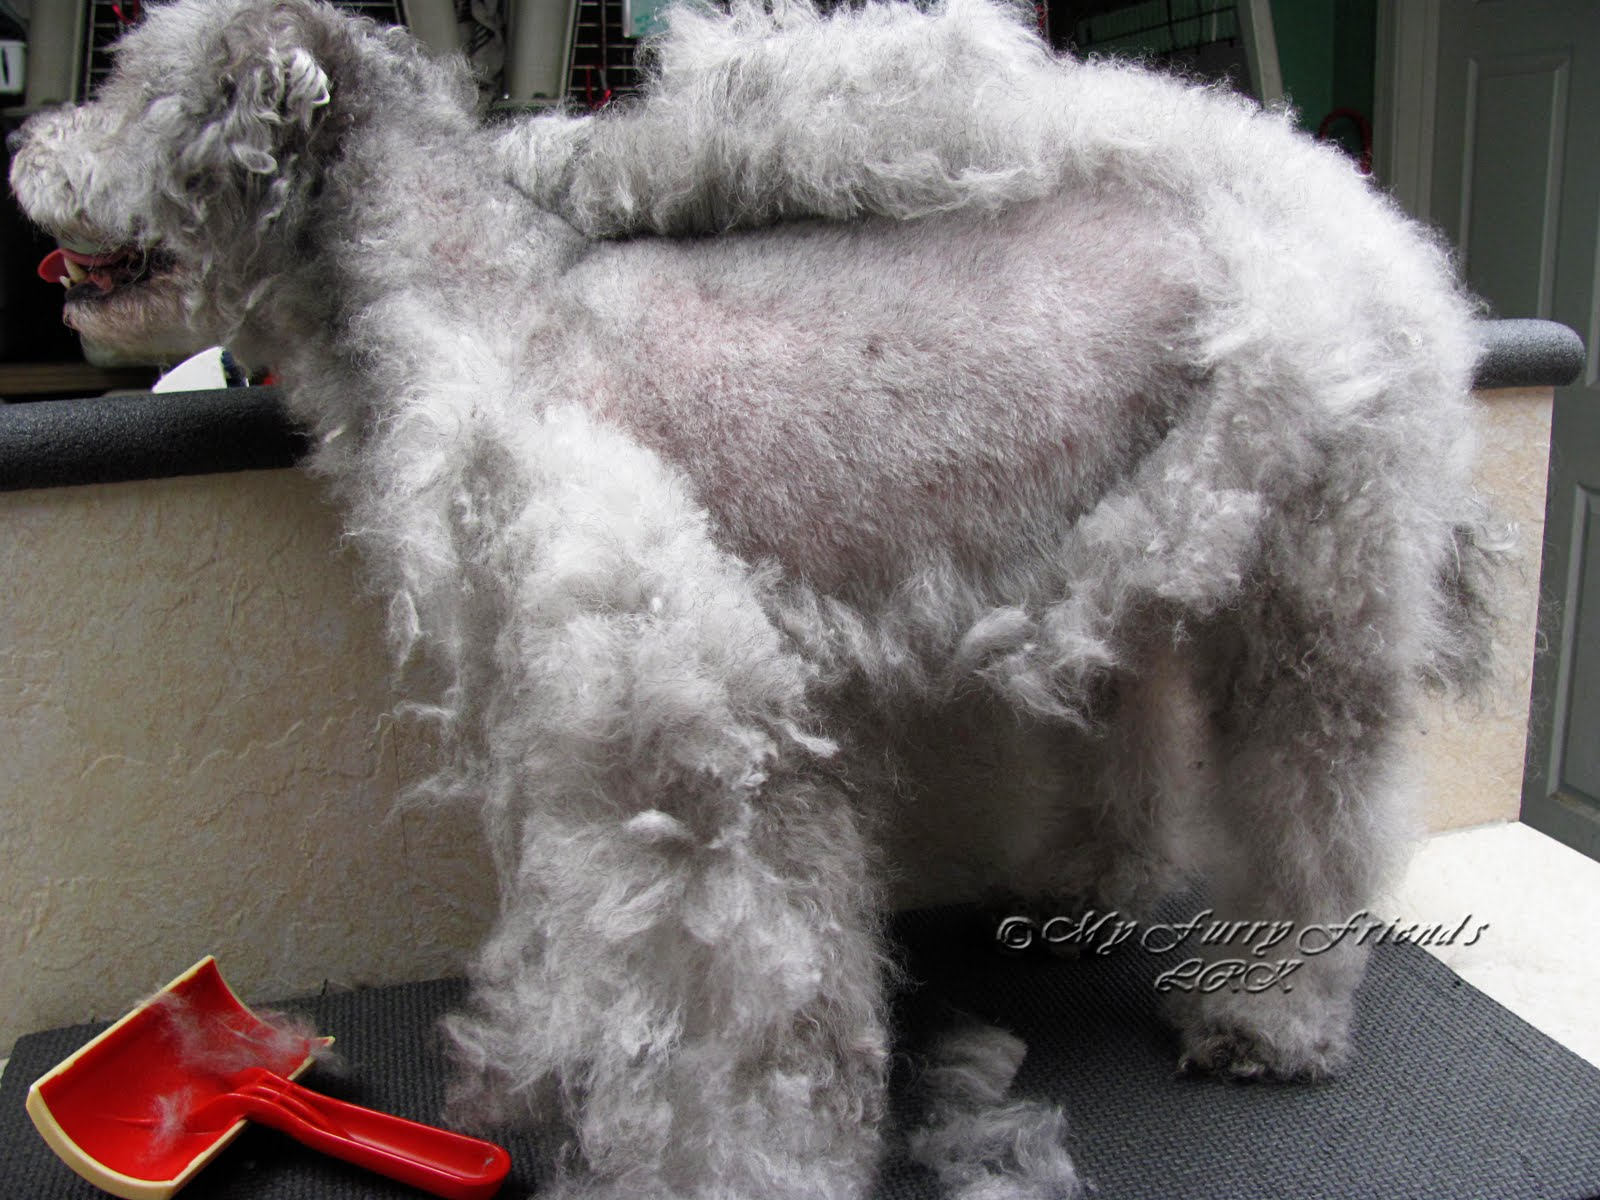 Pet Grooming The Good The Bad The Furry It Never Fails